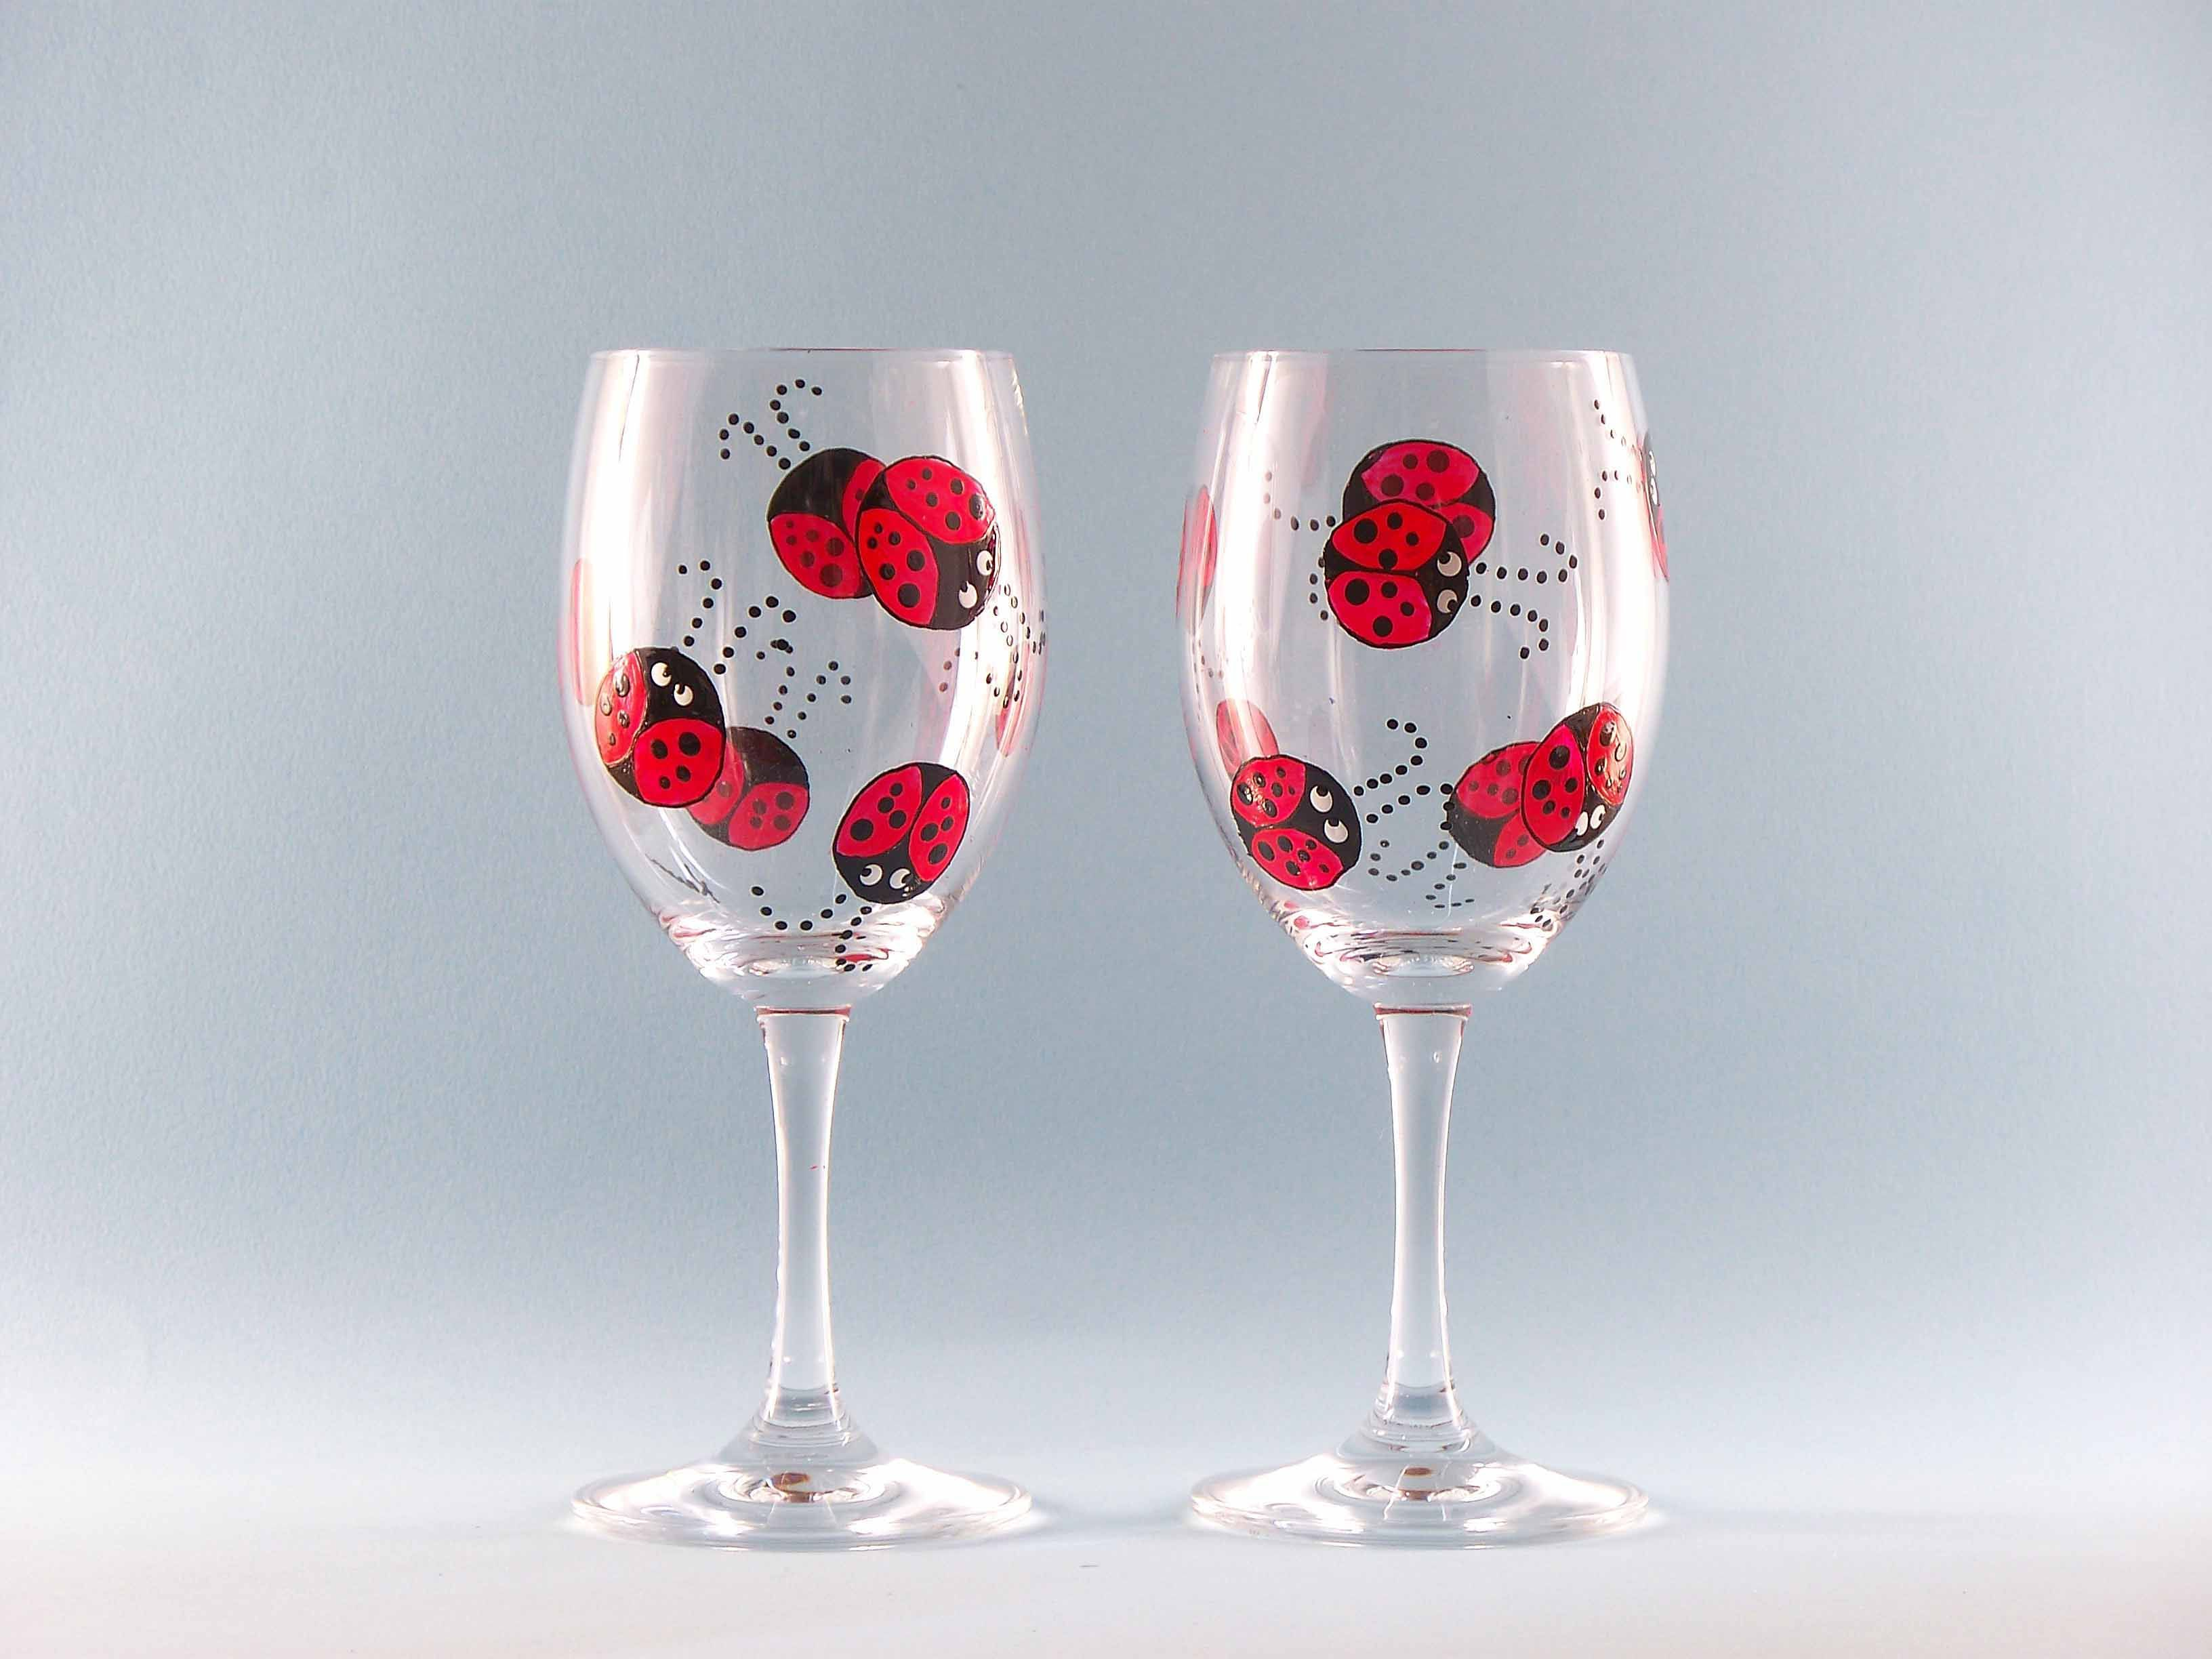 Wine Glass Design Ideas 15oz stemless wine glass vinyl color can Images For Glass Painting Patterns For Wine Glasses